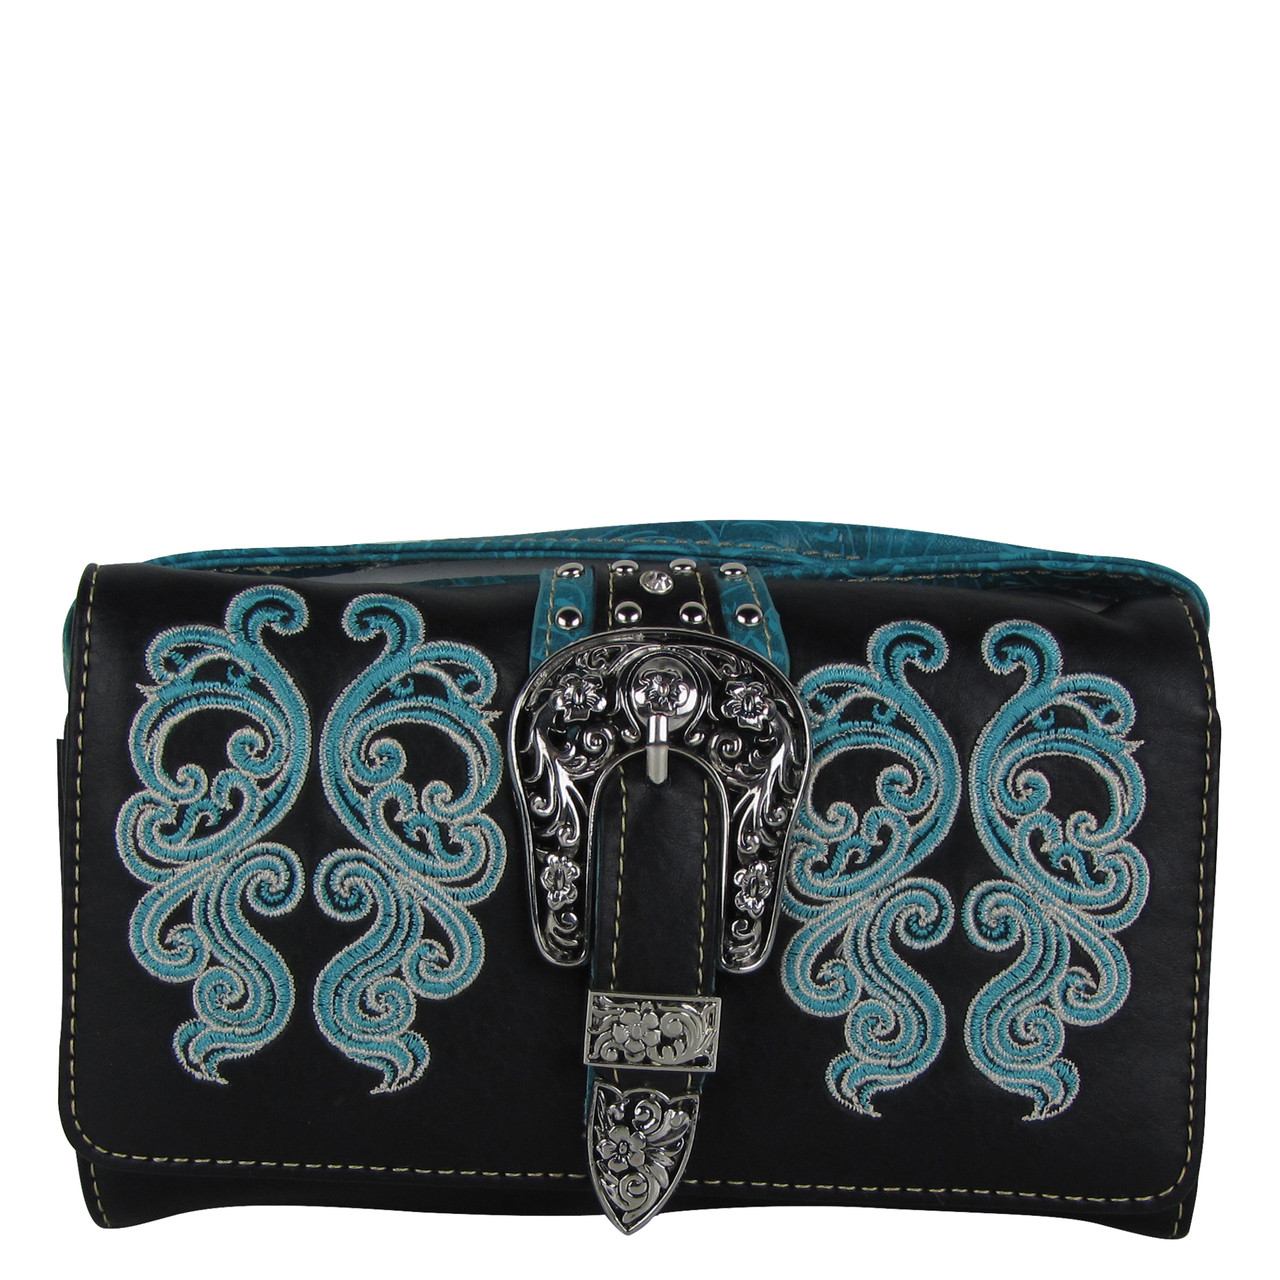 BLACK TURQUOISE WESTERN BUCKLE LOOK CLUTCH TRIFOLD WALLET CW1-1277-1BLKTQ